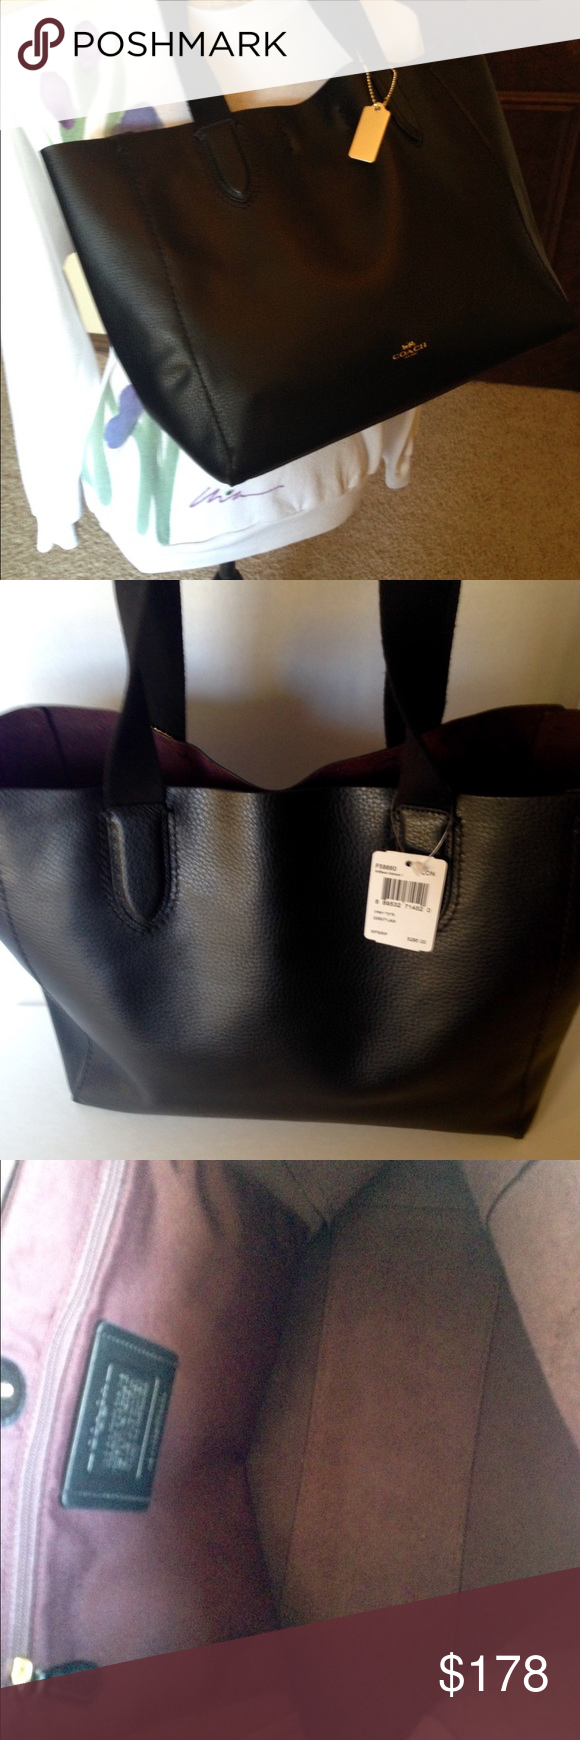 a464345f3911 NWT Coach Derby Tote Pebbled Lthr Black New with tags pebbled leather Coach  Derby Tote black. Open top with magnetic snap closure. Oxblood lining.